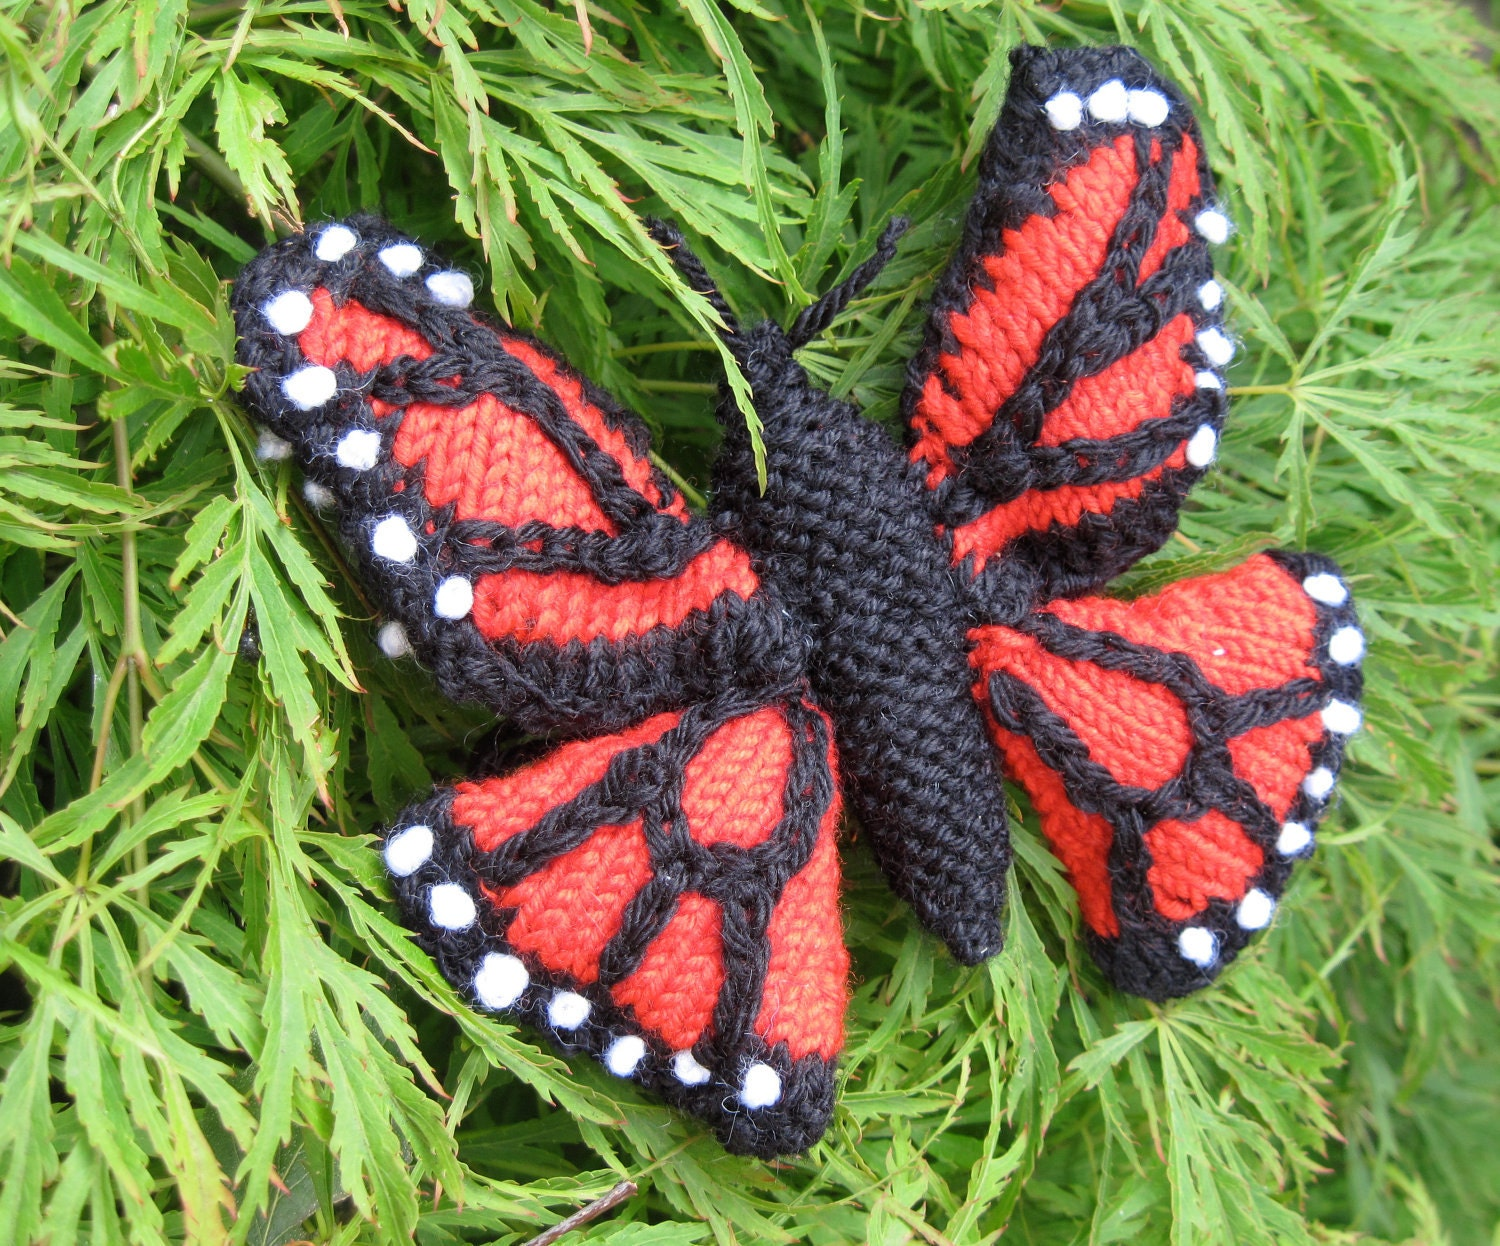 Monarch Butterfly Knitting Pattern from GinxCraft on Etsy Studio